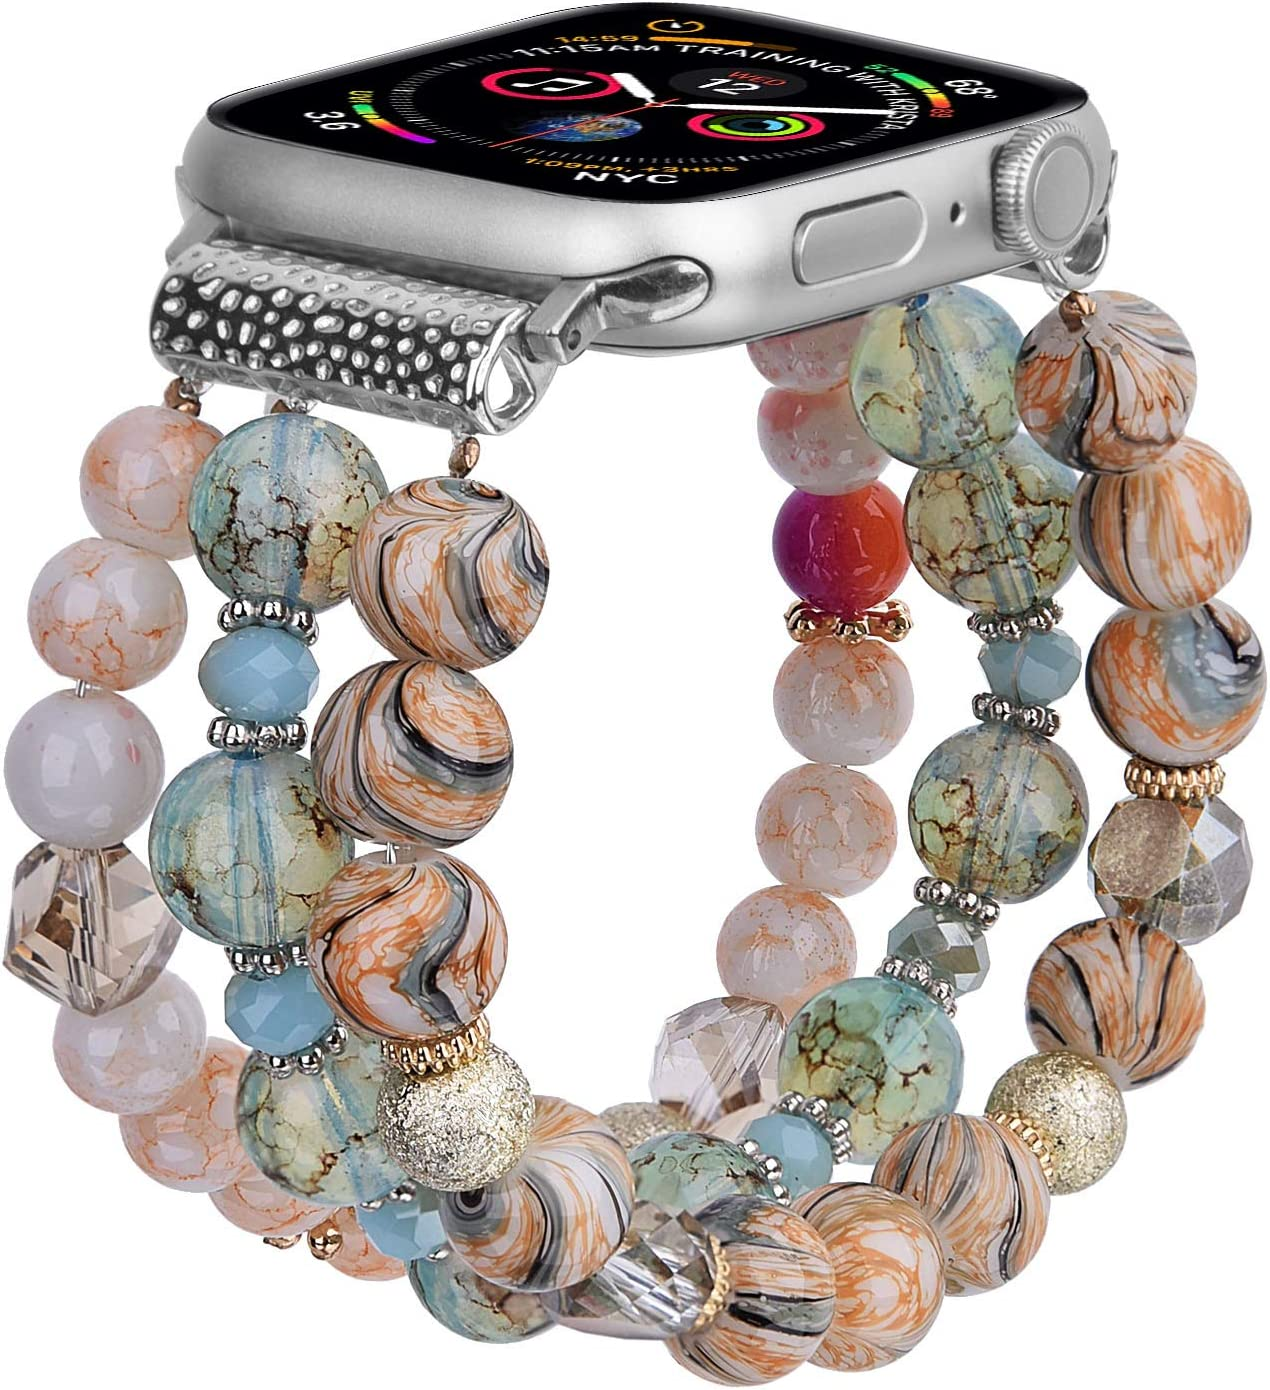 CAGOS Bracelet Beadeds Compatible with Apple Watch Band 42mm/44mm Series SE/6/5/4/3/2/1 Cute Handmade Fashion Elastic Stretch Beaded Strap Replacement with Stainless Steel Adapter for iWatch Blue